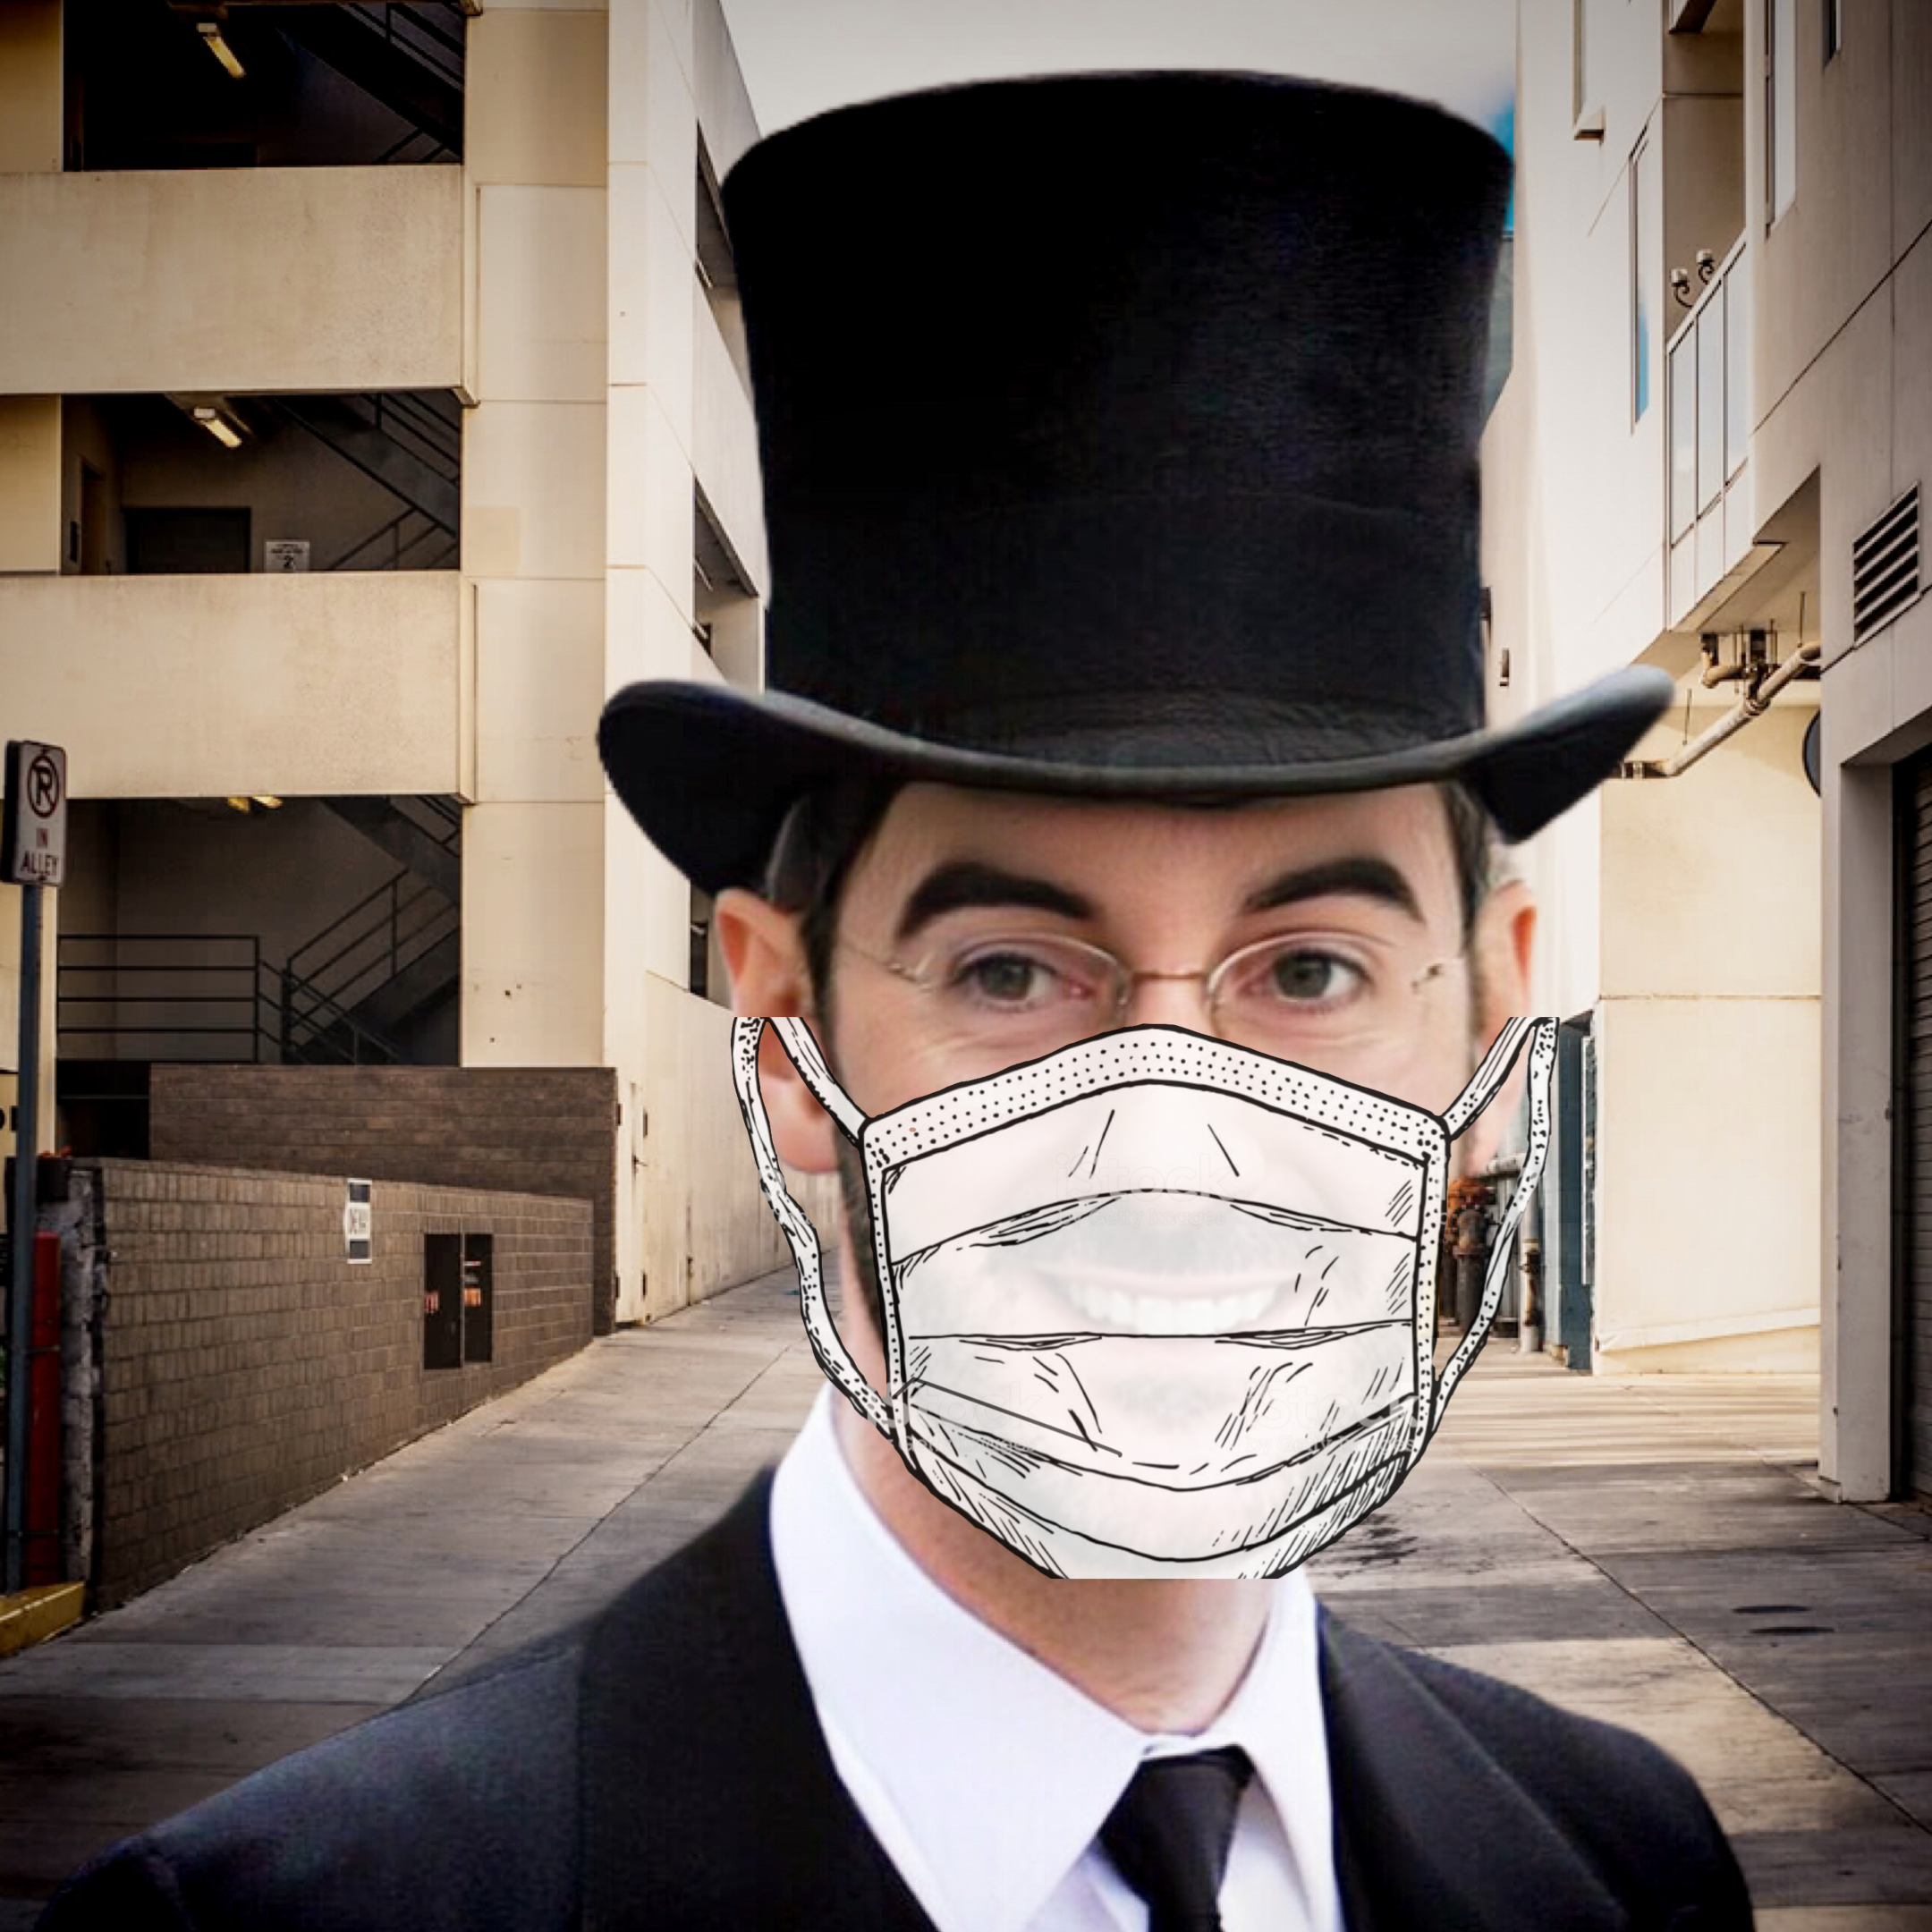 Dapper gent in a top hat and face mask